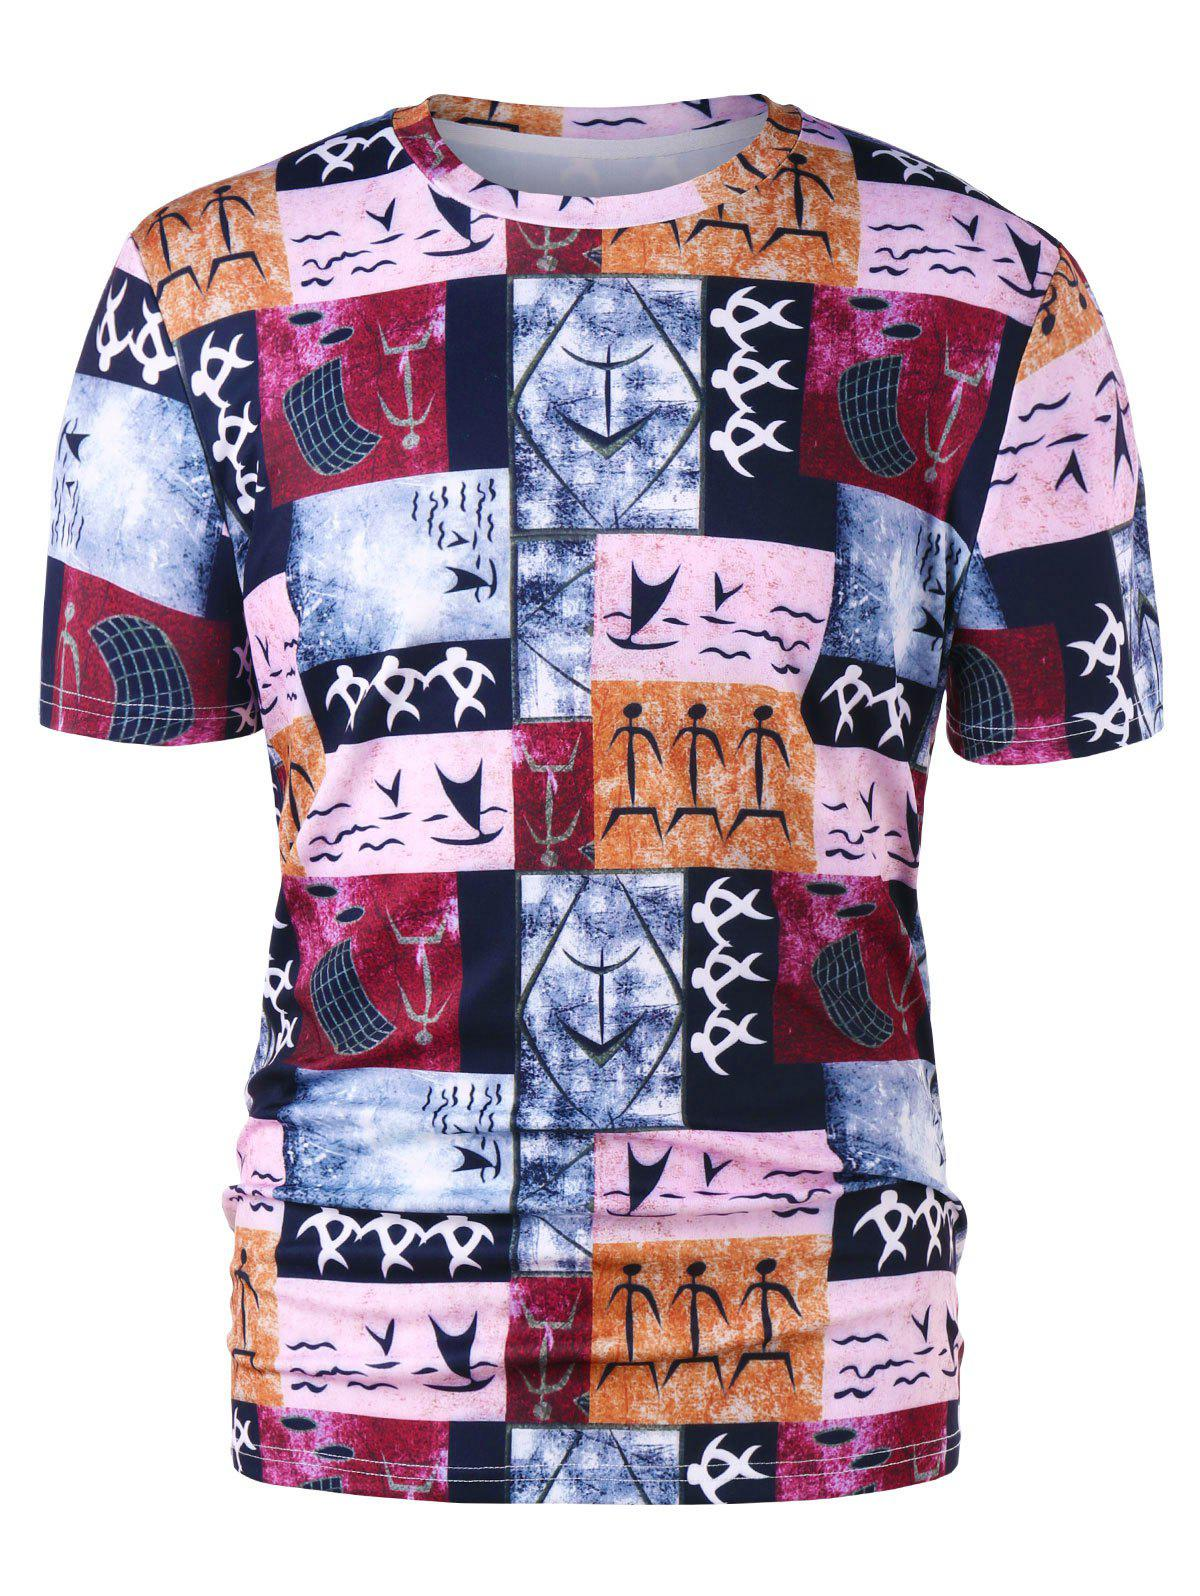 Crew Neck Warli Tribal Print T-shirt - COLORMIX M